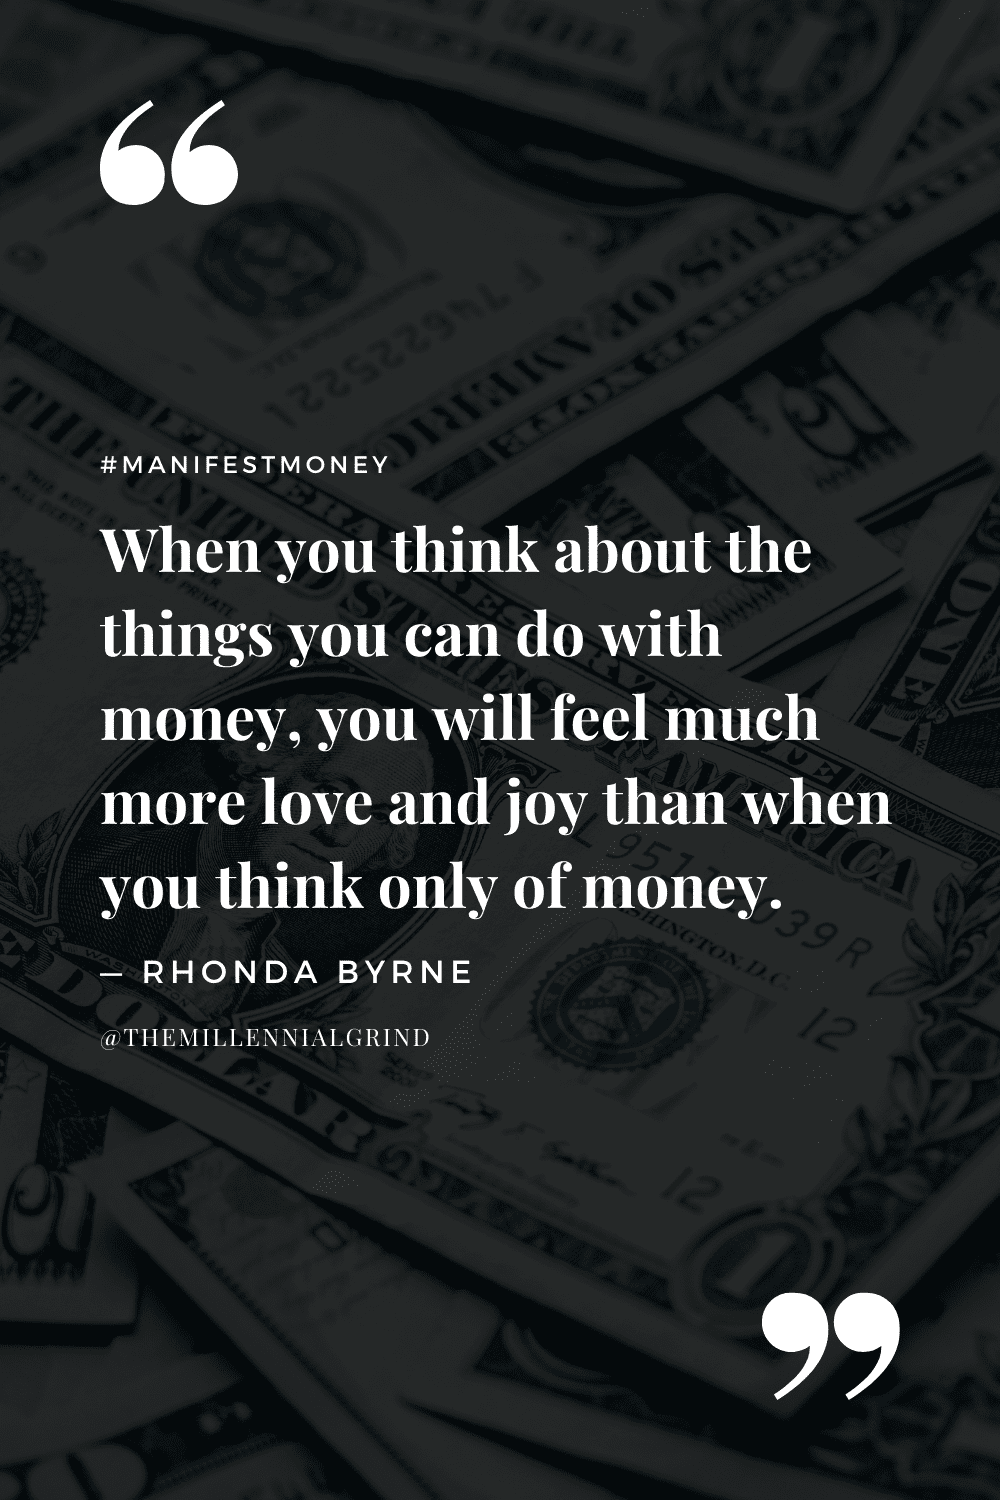 """""""When you think about the things you can do with money, you will feel much more love and joy than when you think only of money."""" – Rhonda Byrne"""